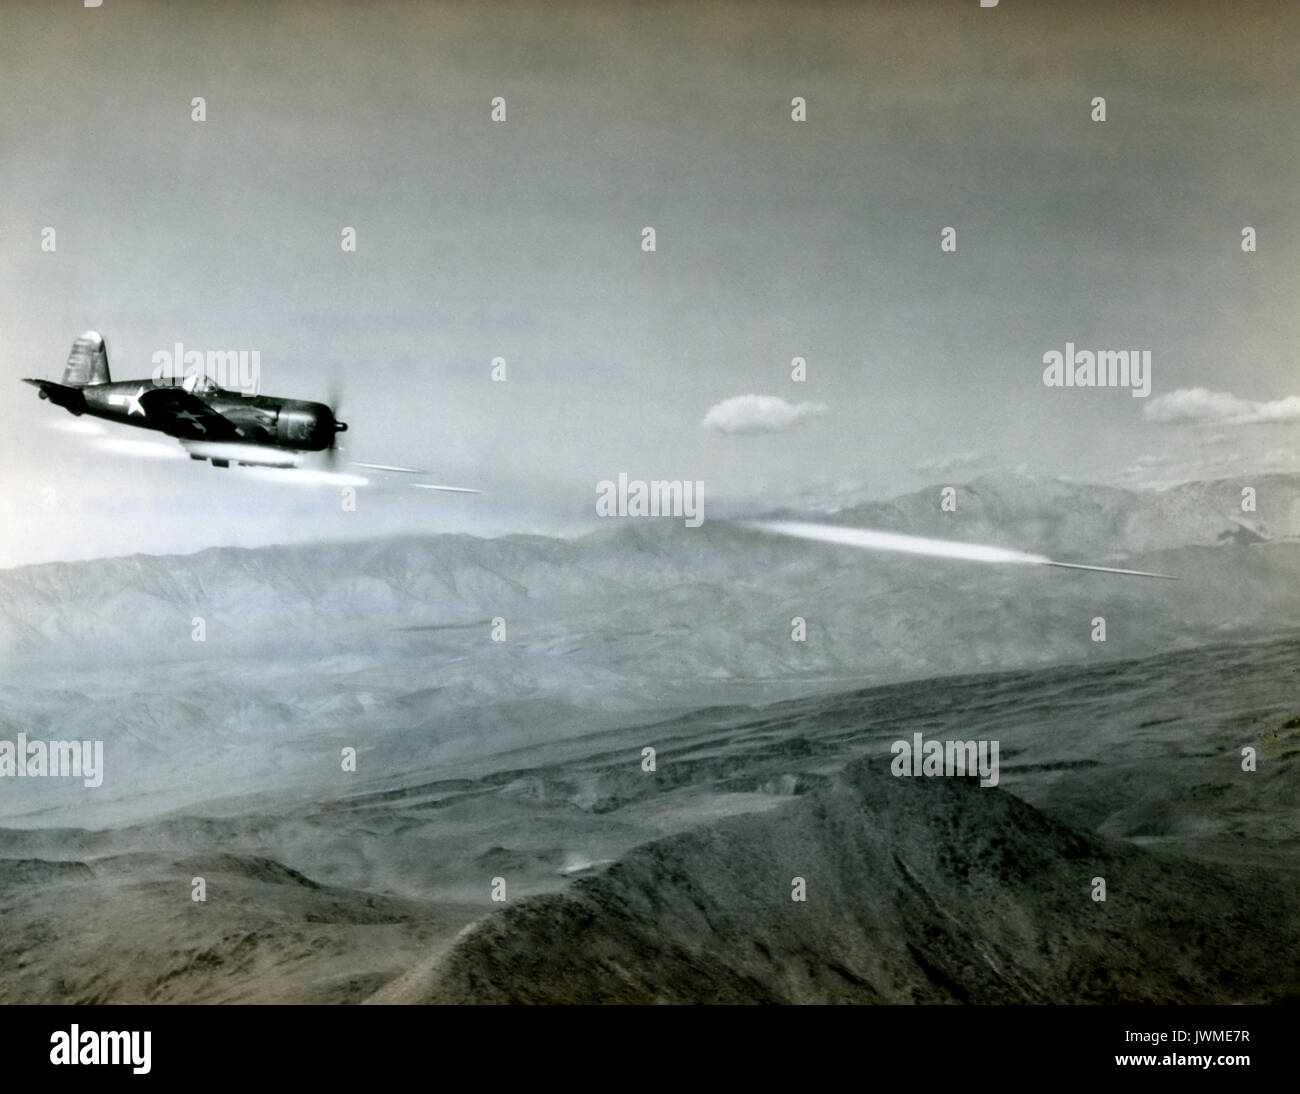 U.S. Navy Vought F4U Corsair fighter aircraft fires a 6.5-inch Anti-Tank Aircraft Rocket known as an ATAR during a combat mission over Korea during the Korean War in 1951. - Stock Image